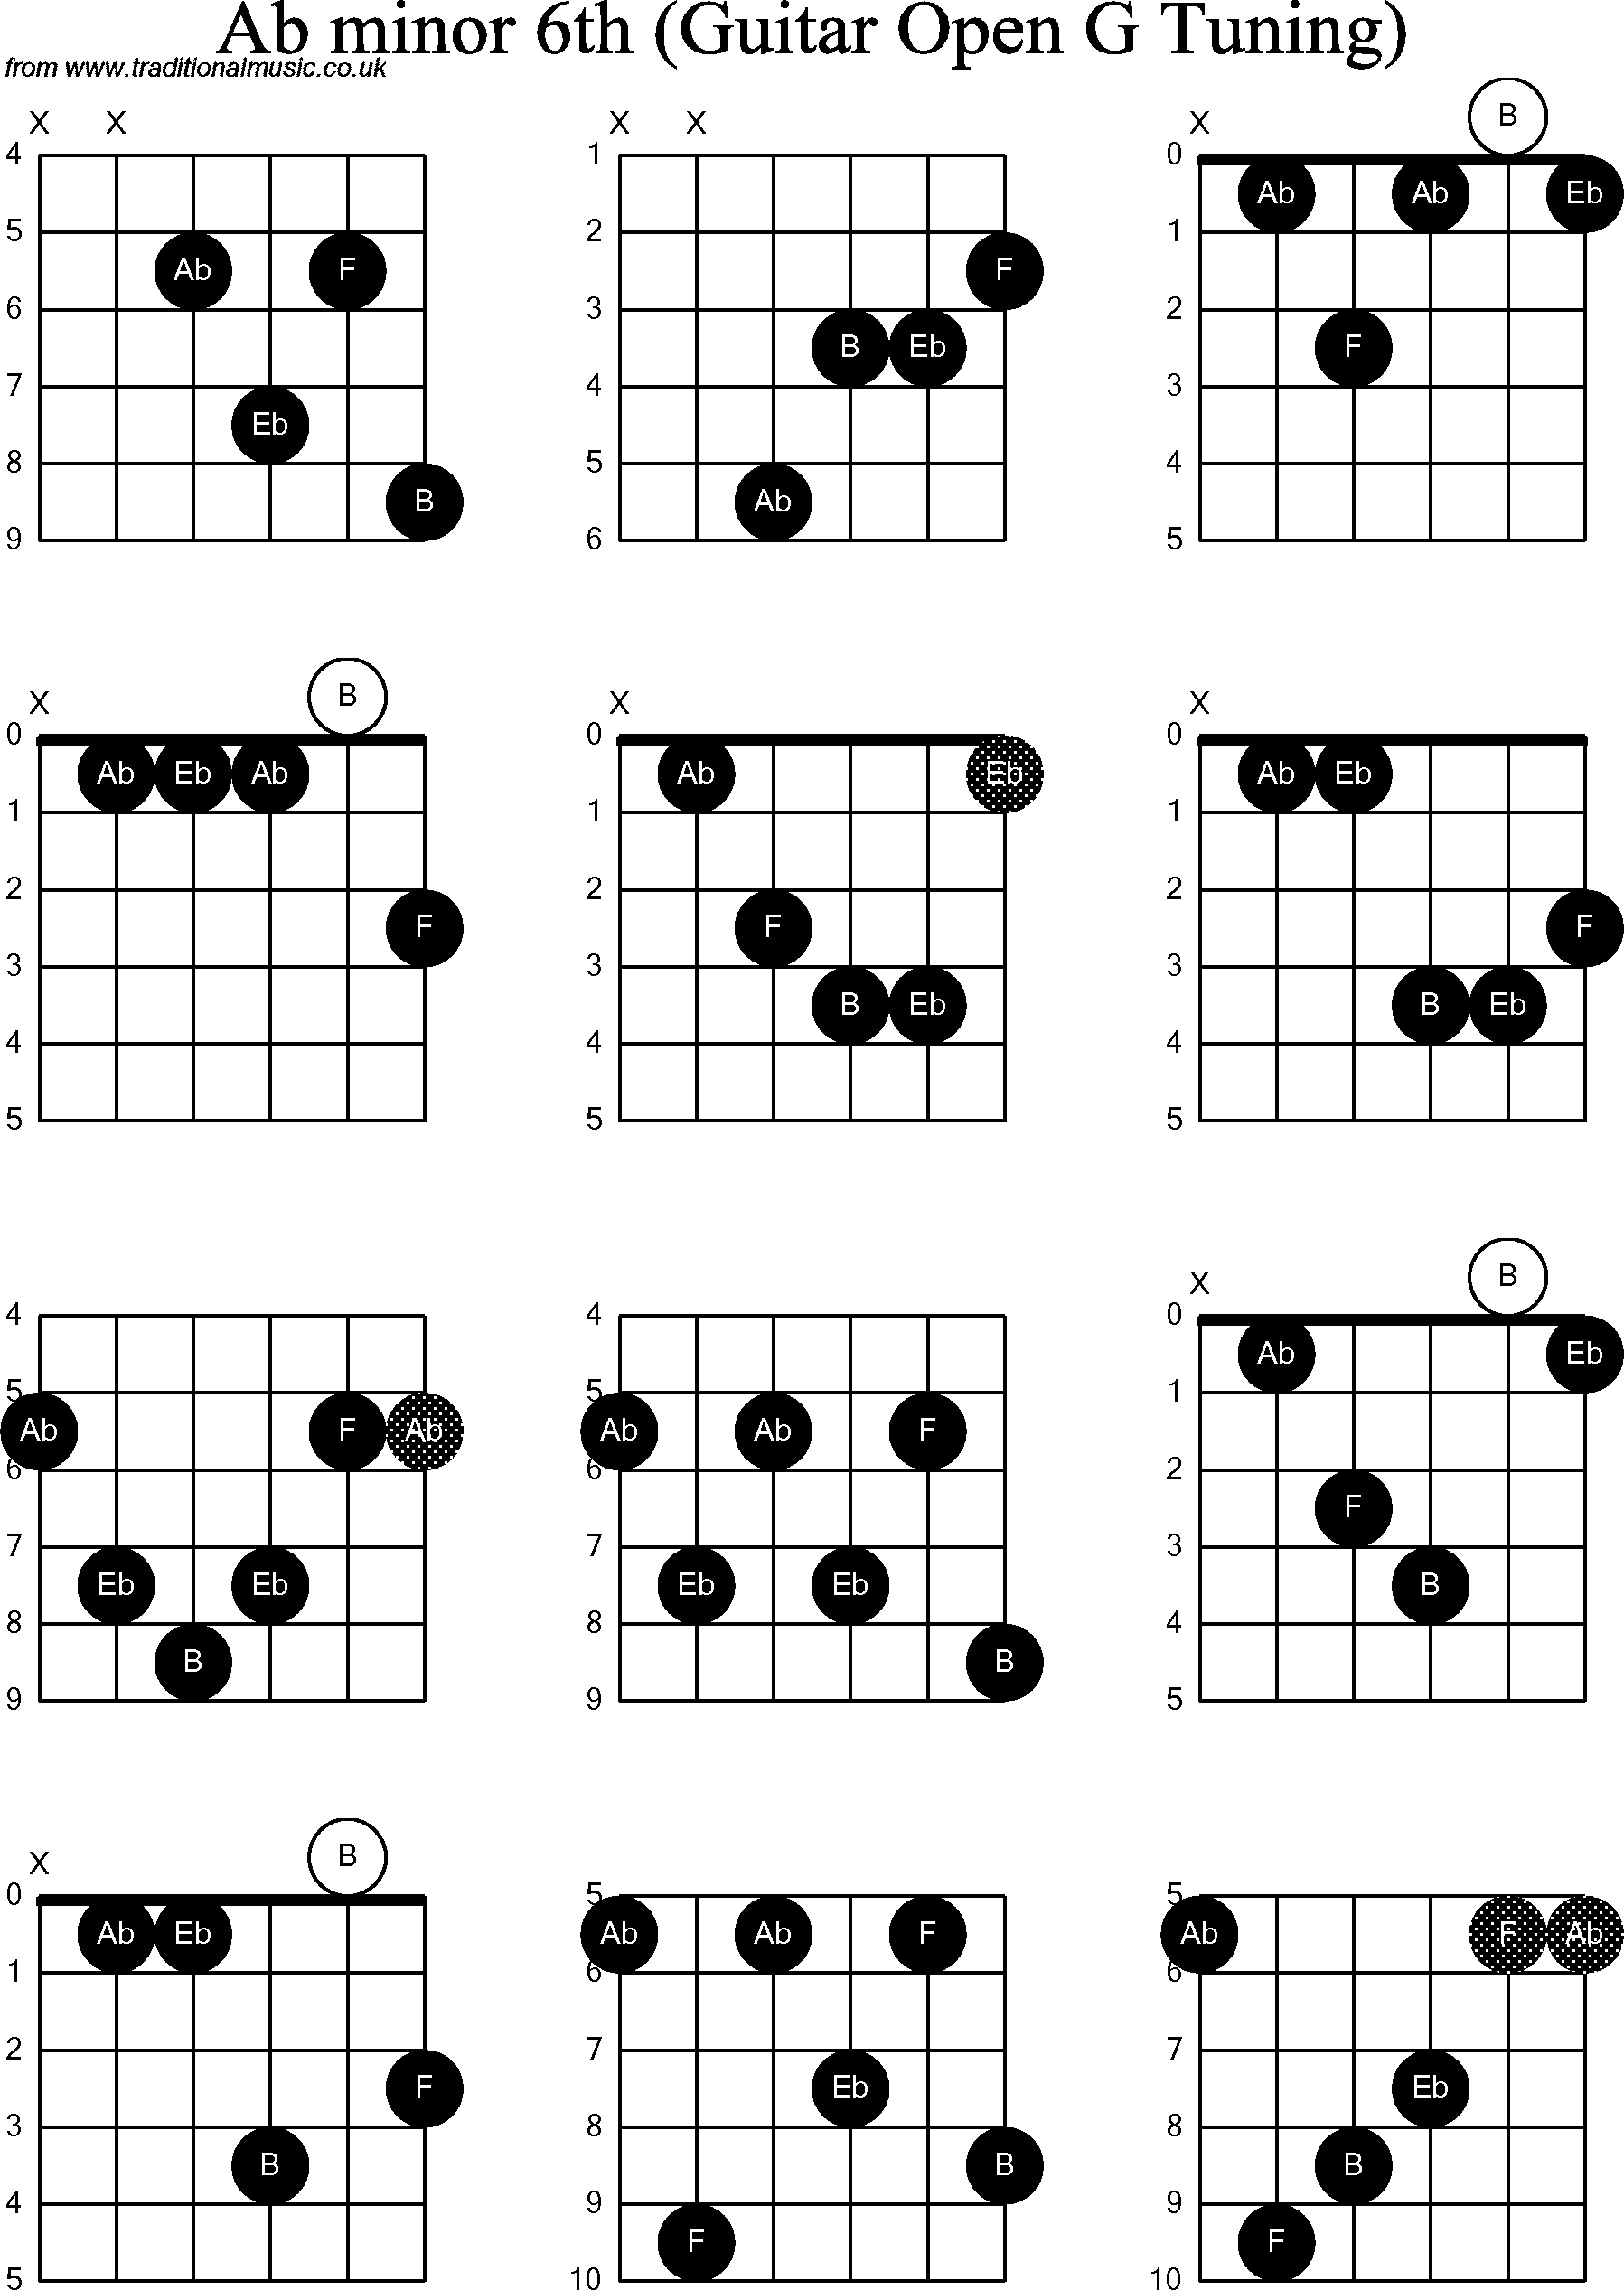 chord diagrams for  dobro ab minor6th